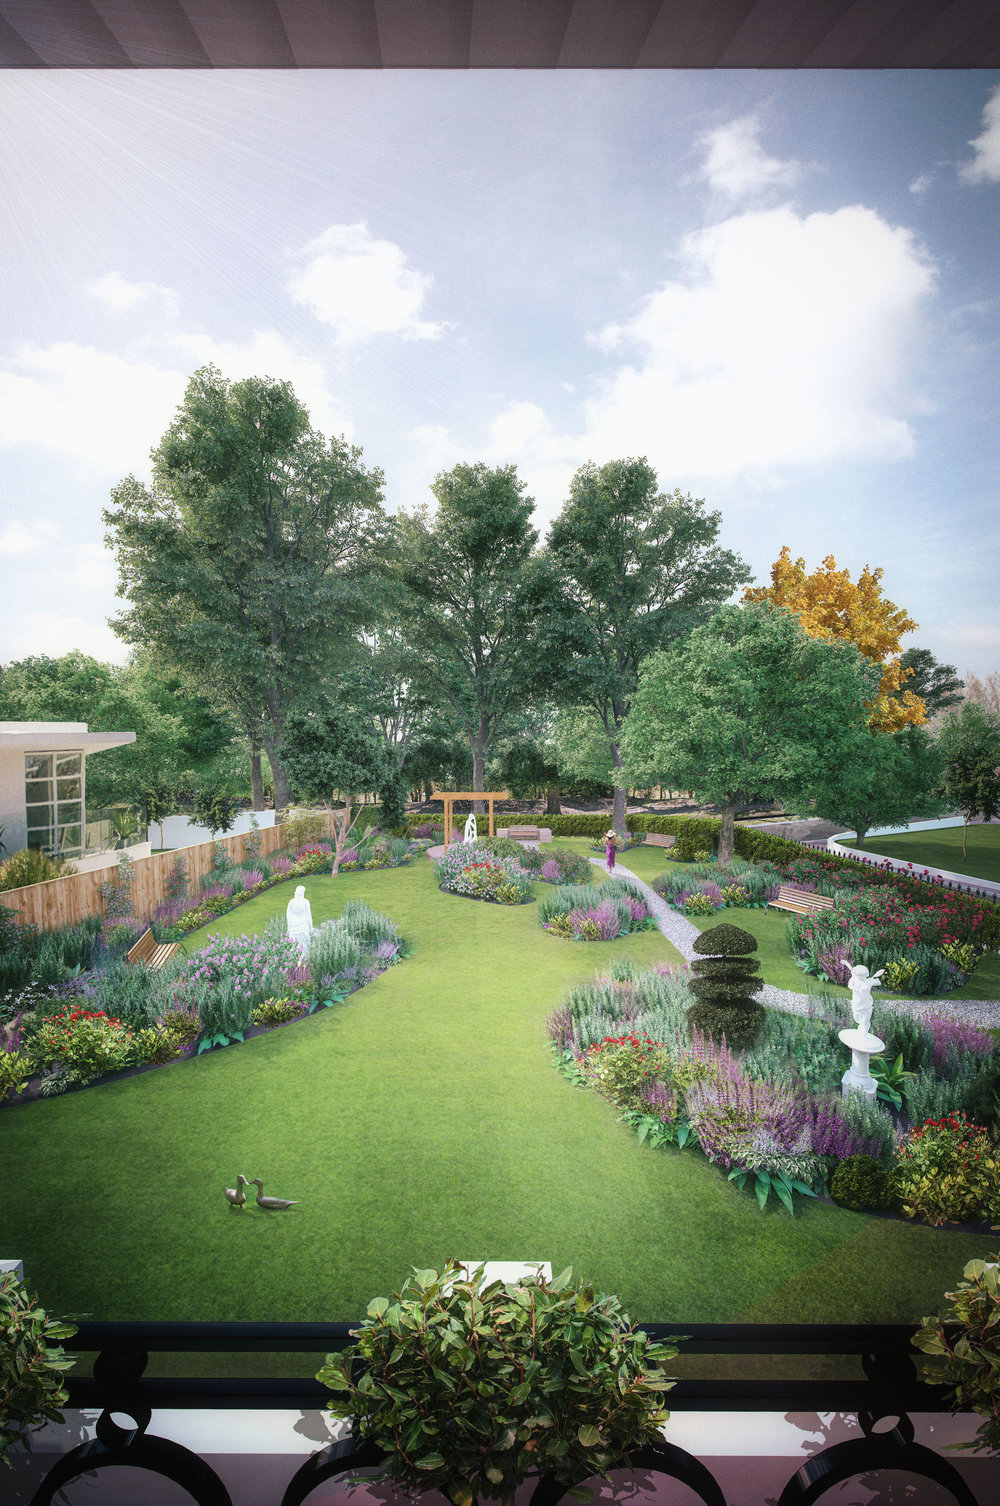 QPV_CGI_Garden_Visual_Illustration.jpg